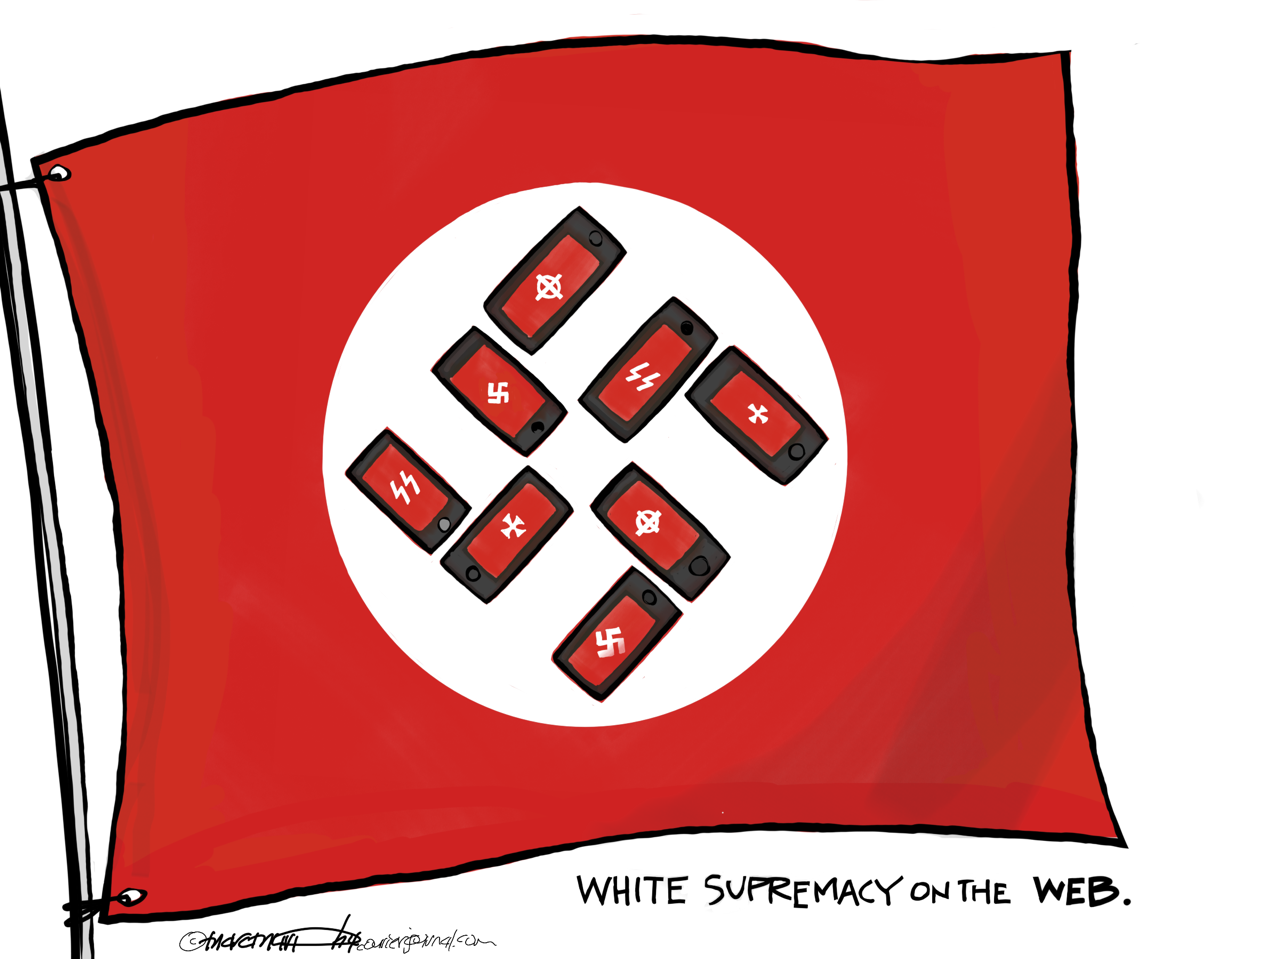 White supremacy on the web